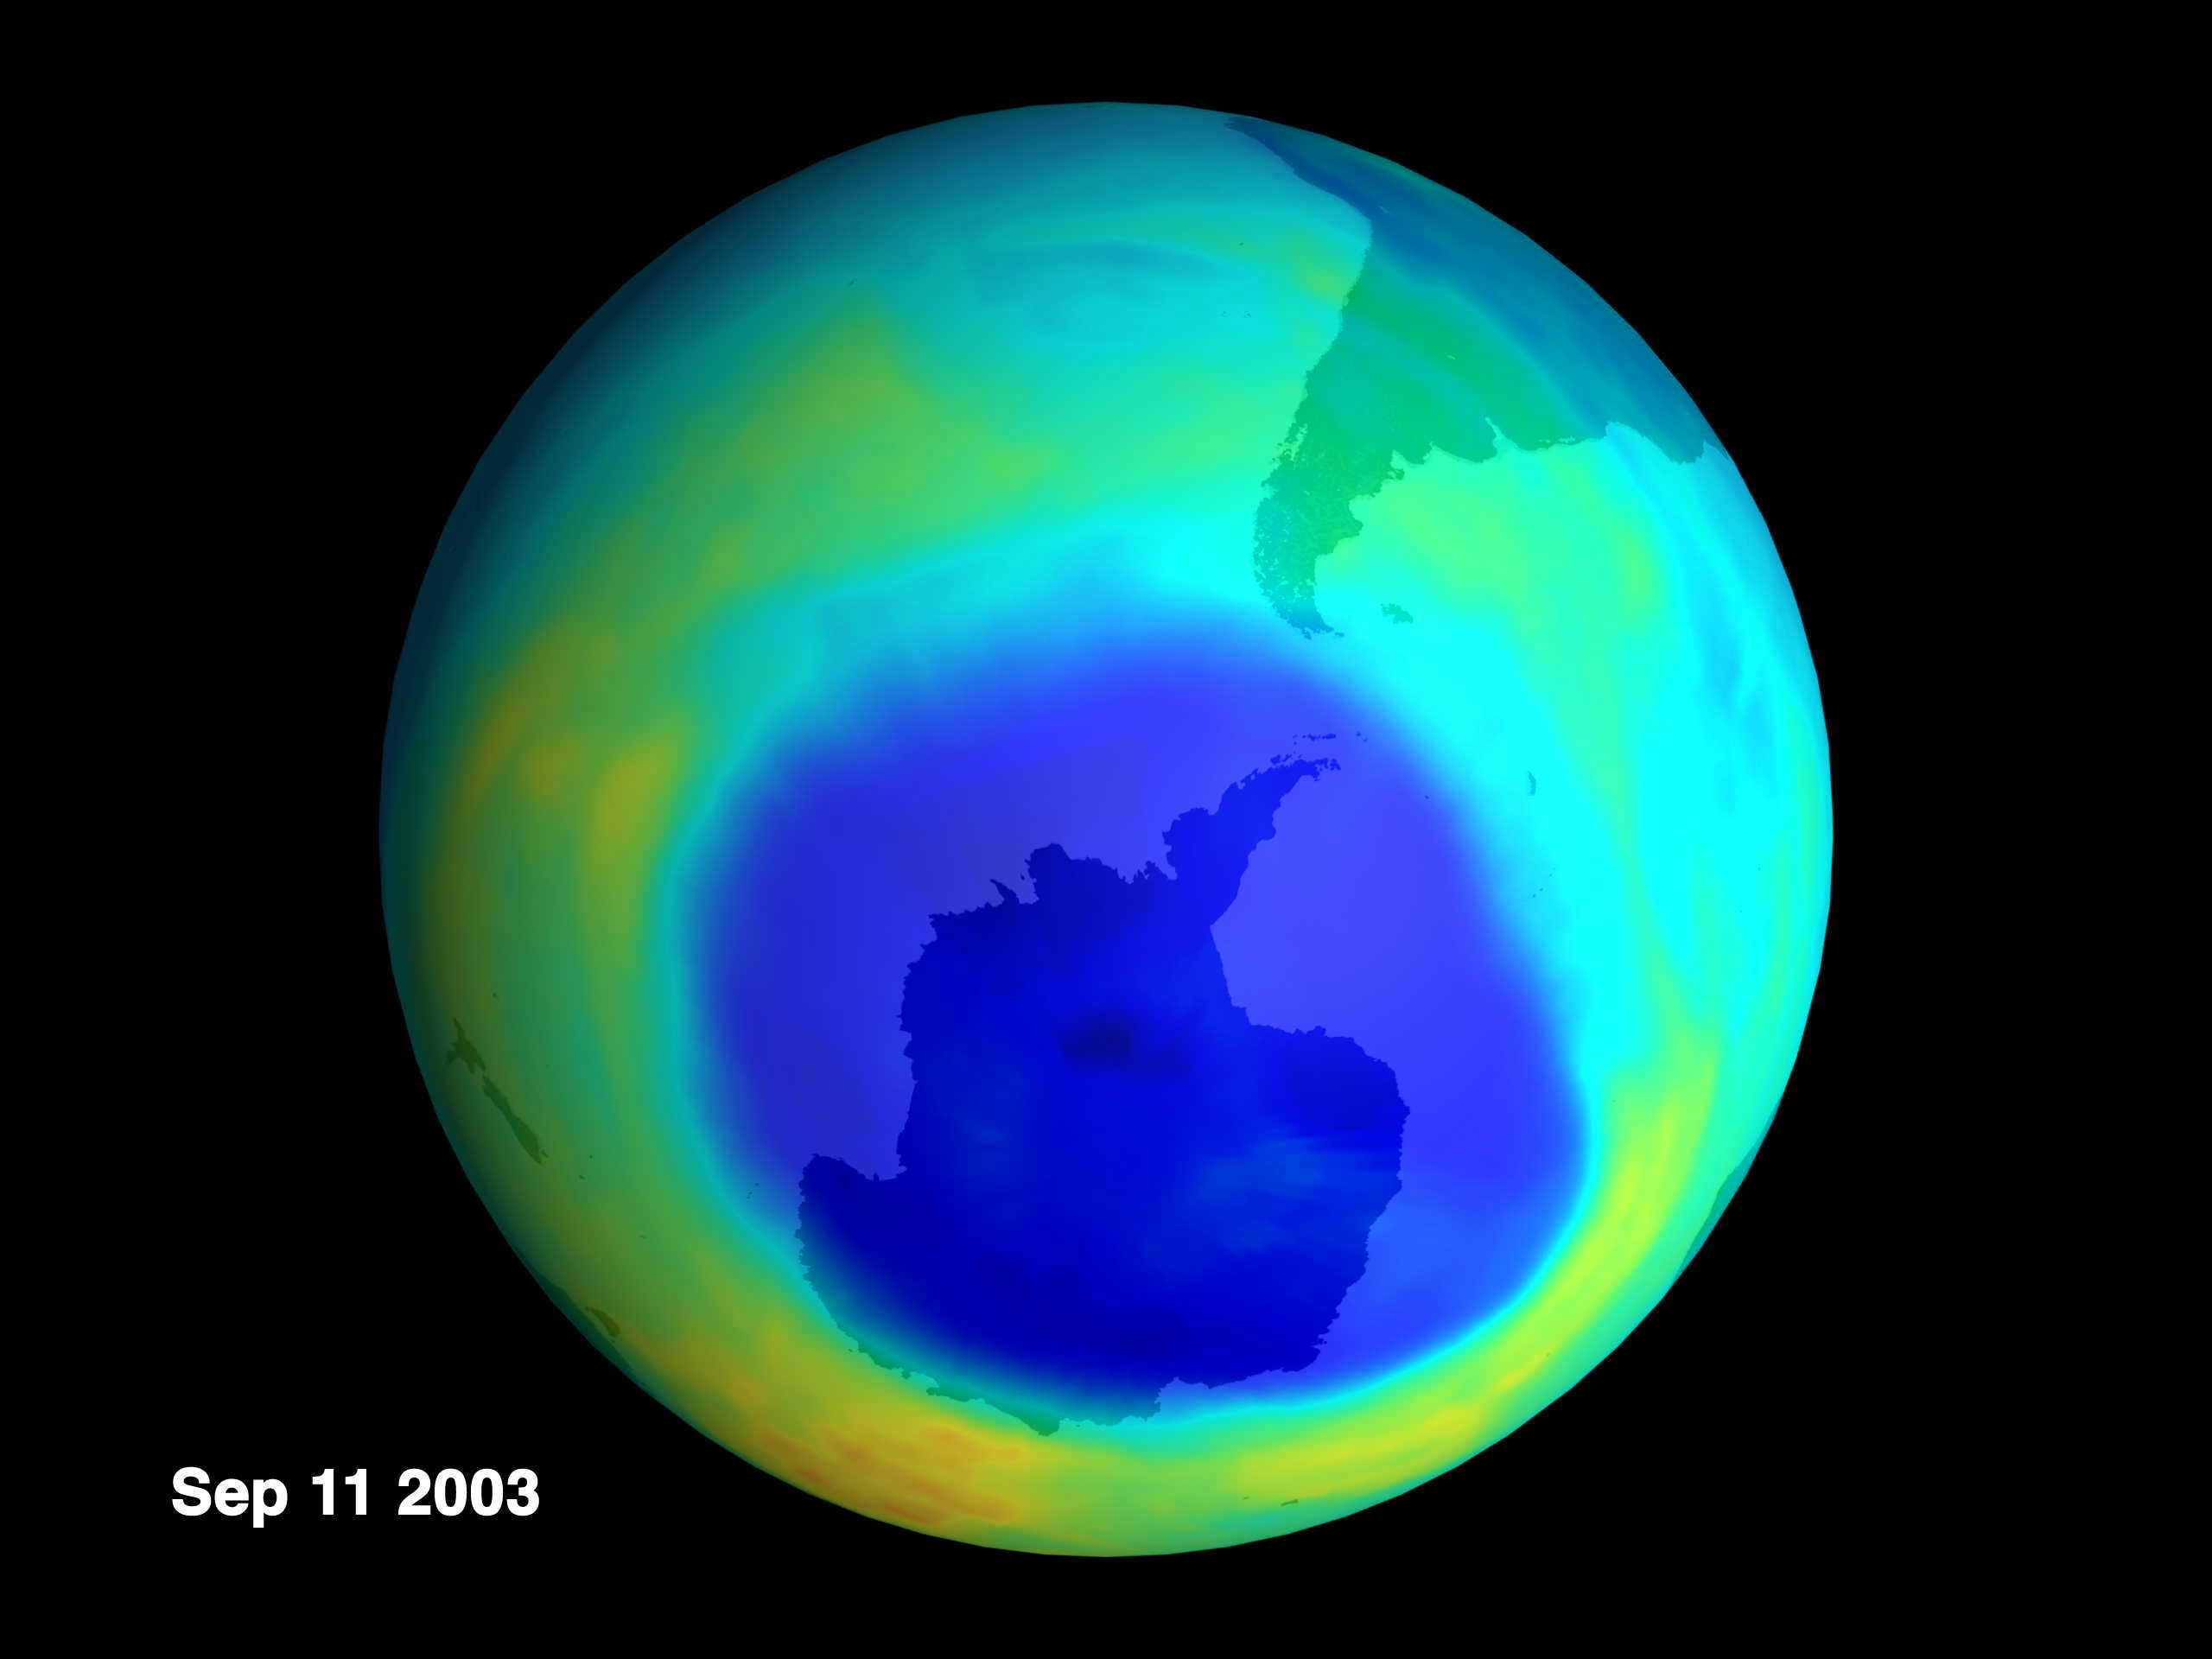 nasa ozone hole - photo #30